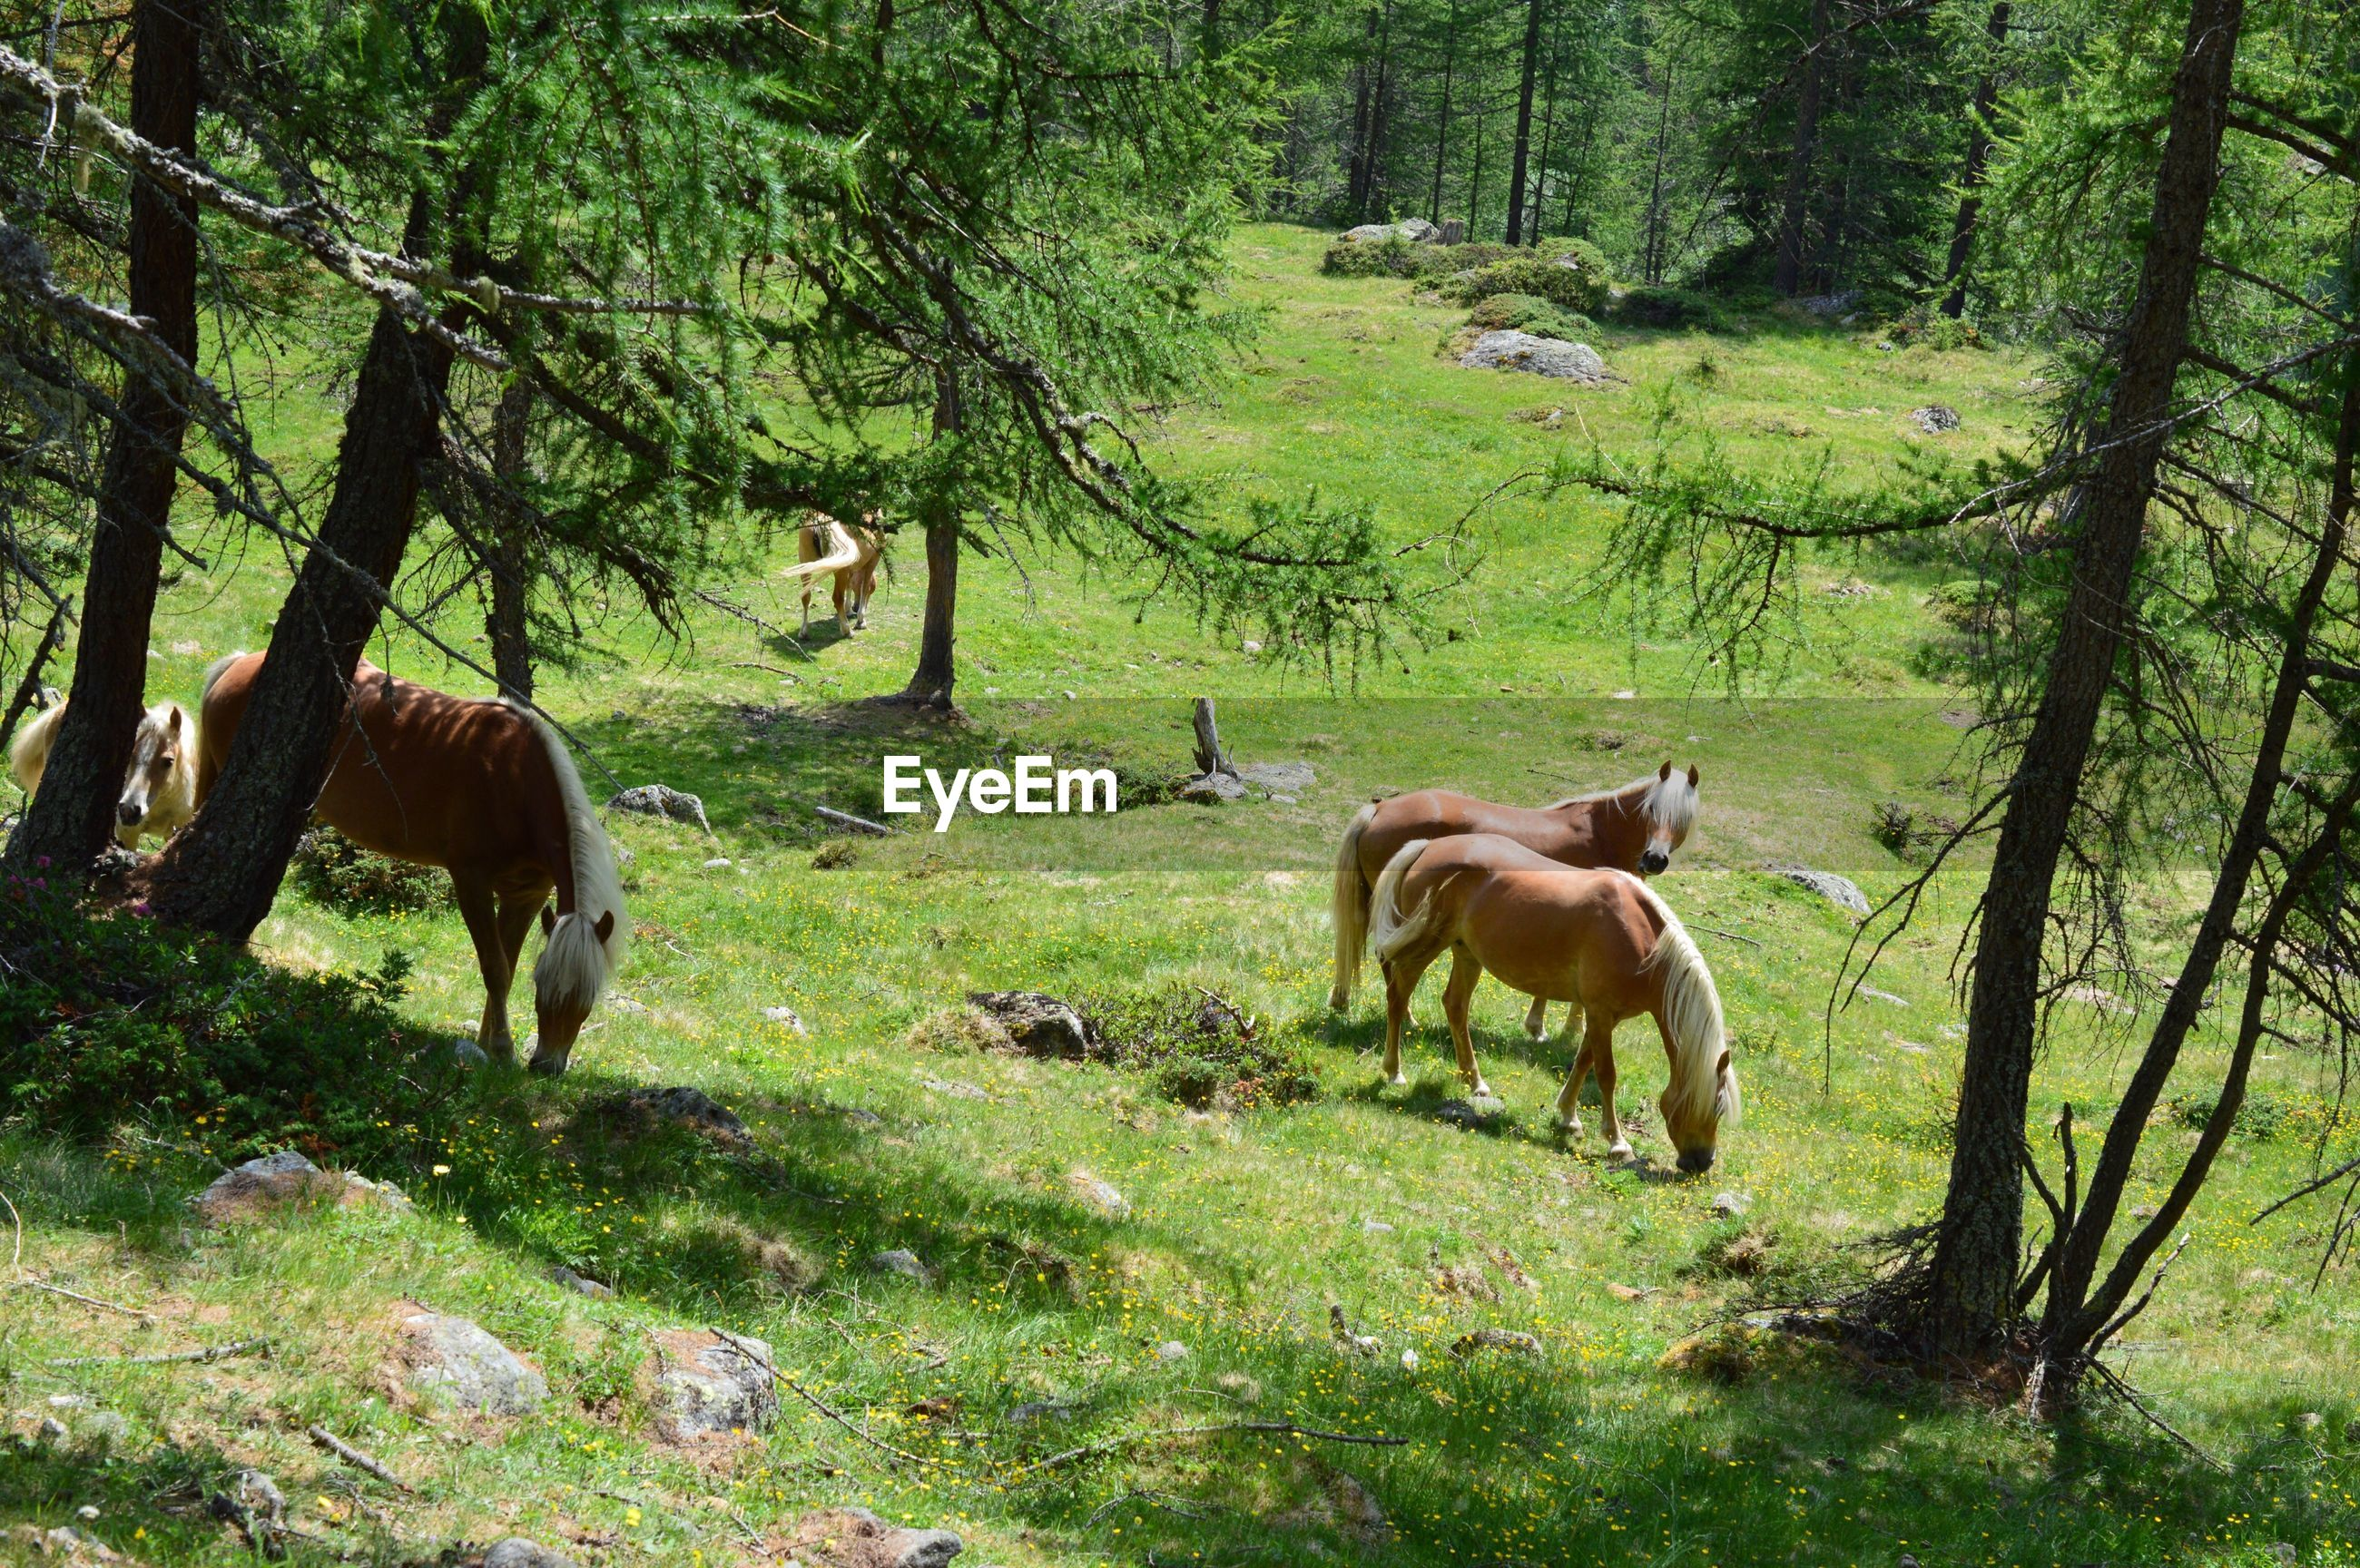 Horses standing in forest